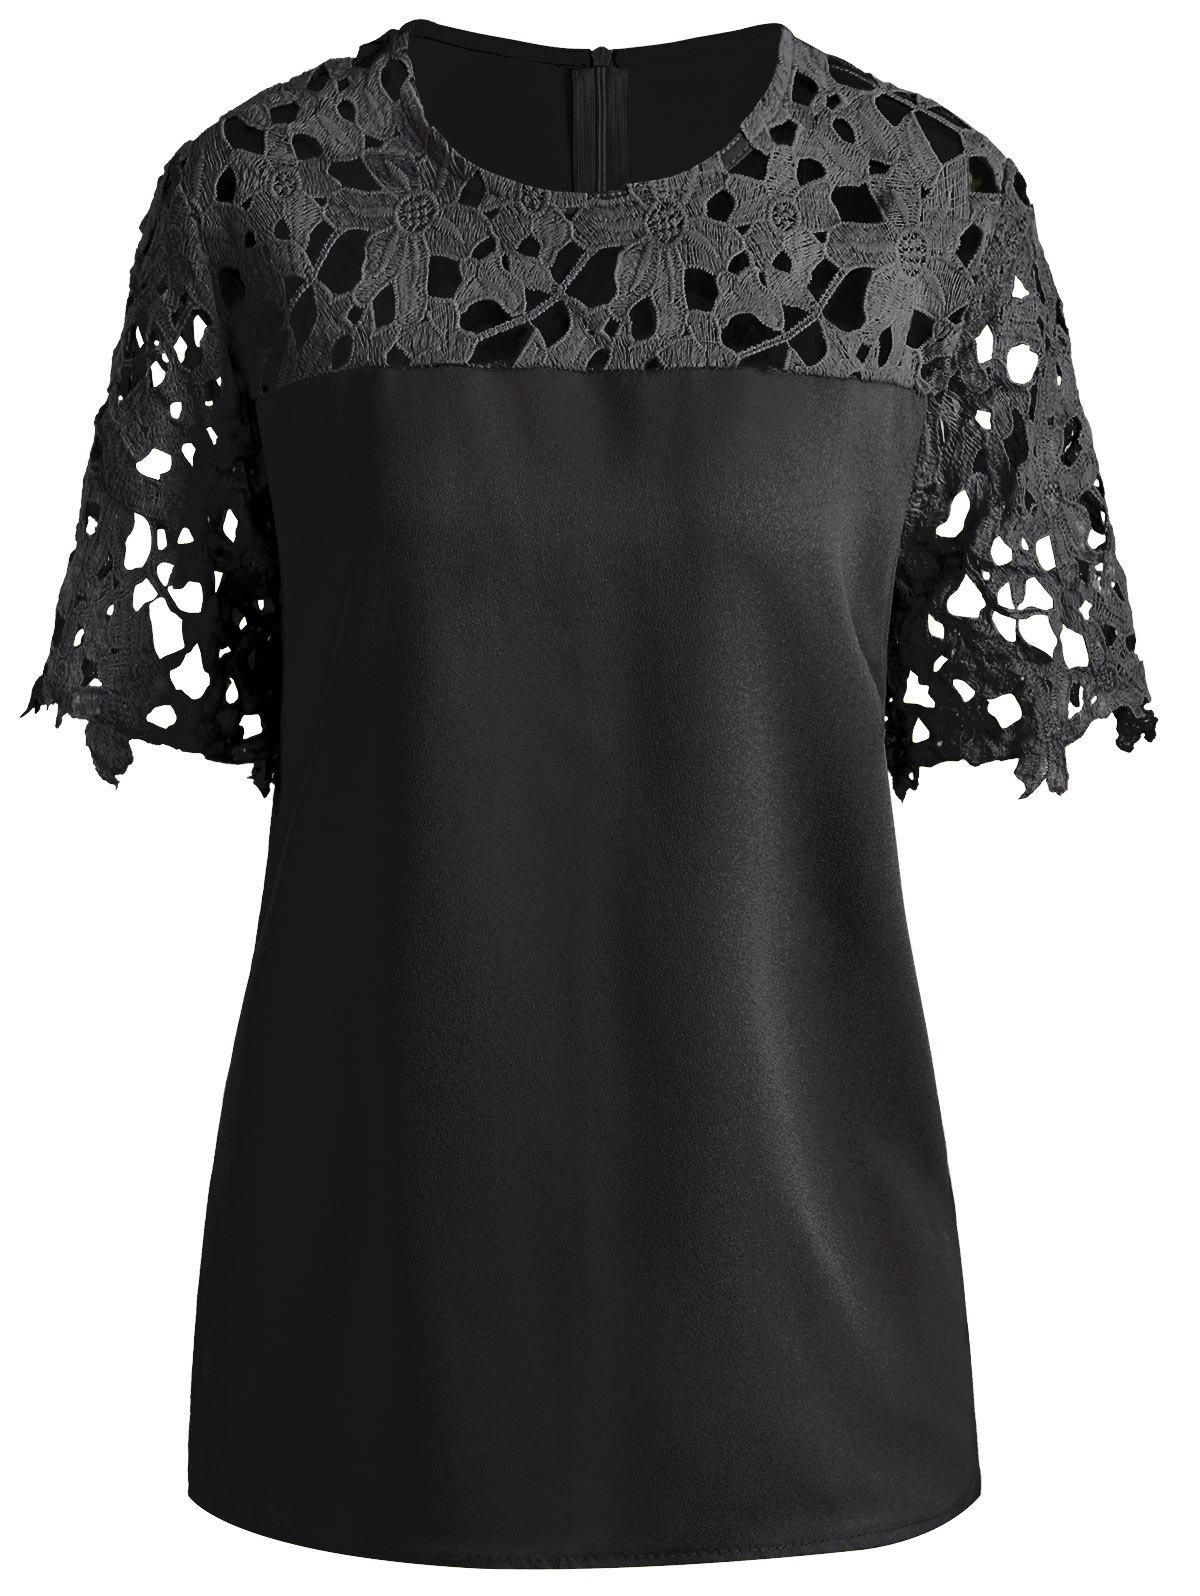 Plus Size Openwork Lace Insert Top - BLACK 5XL